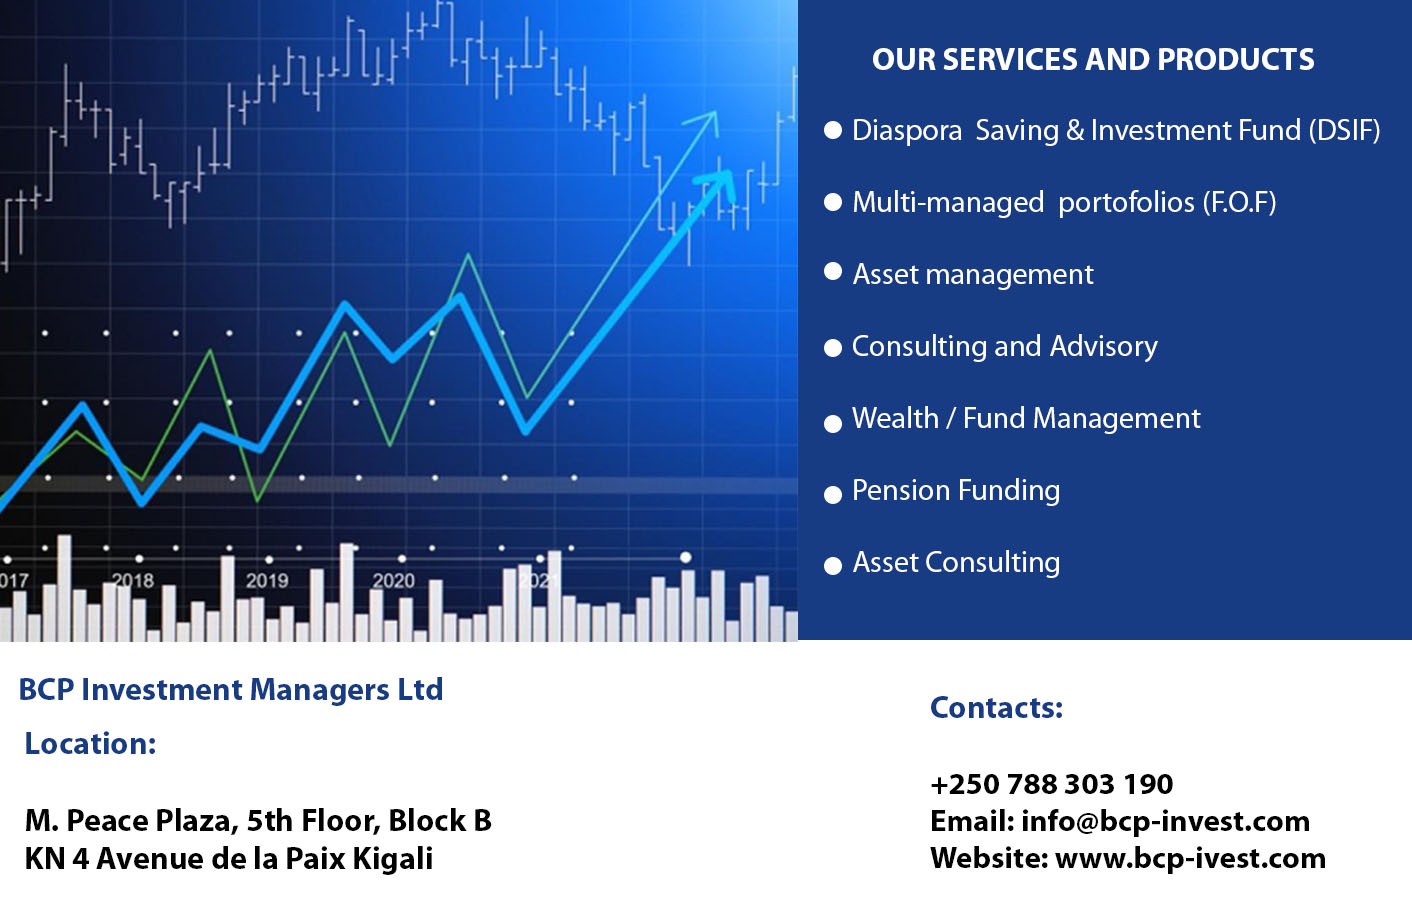 BCP Investment managers Ltd